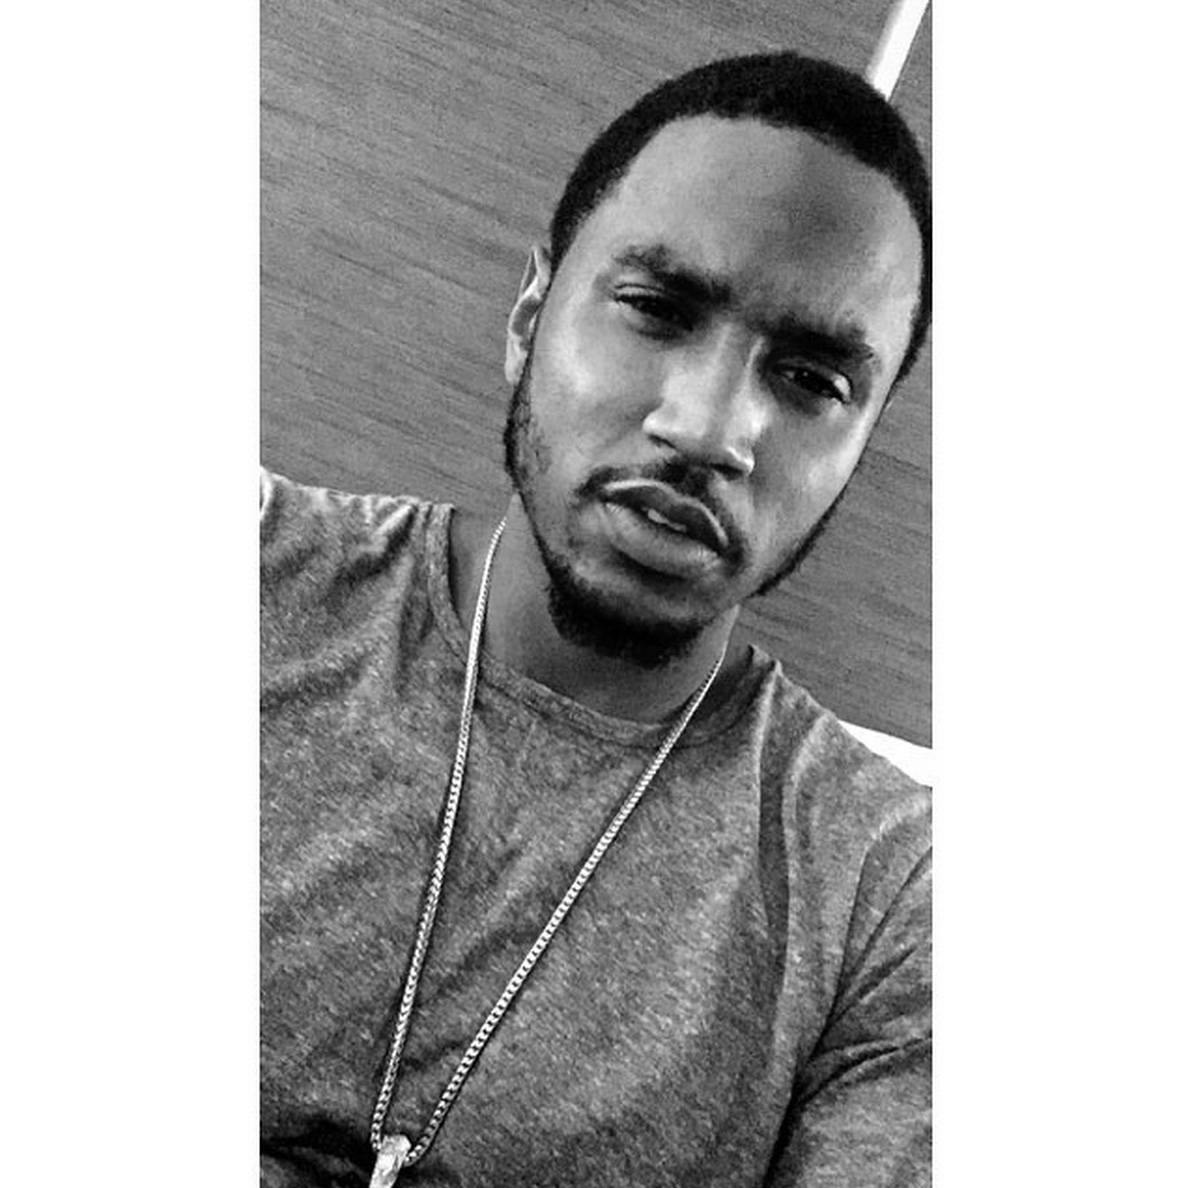 Rustic - Ain't nothing wrong with scruff. (Photo: Trey Songz via Instagram)